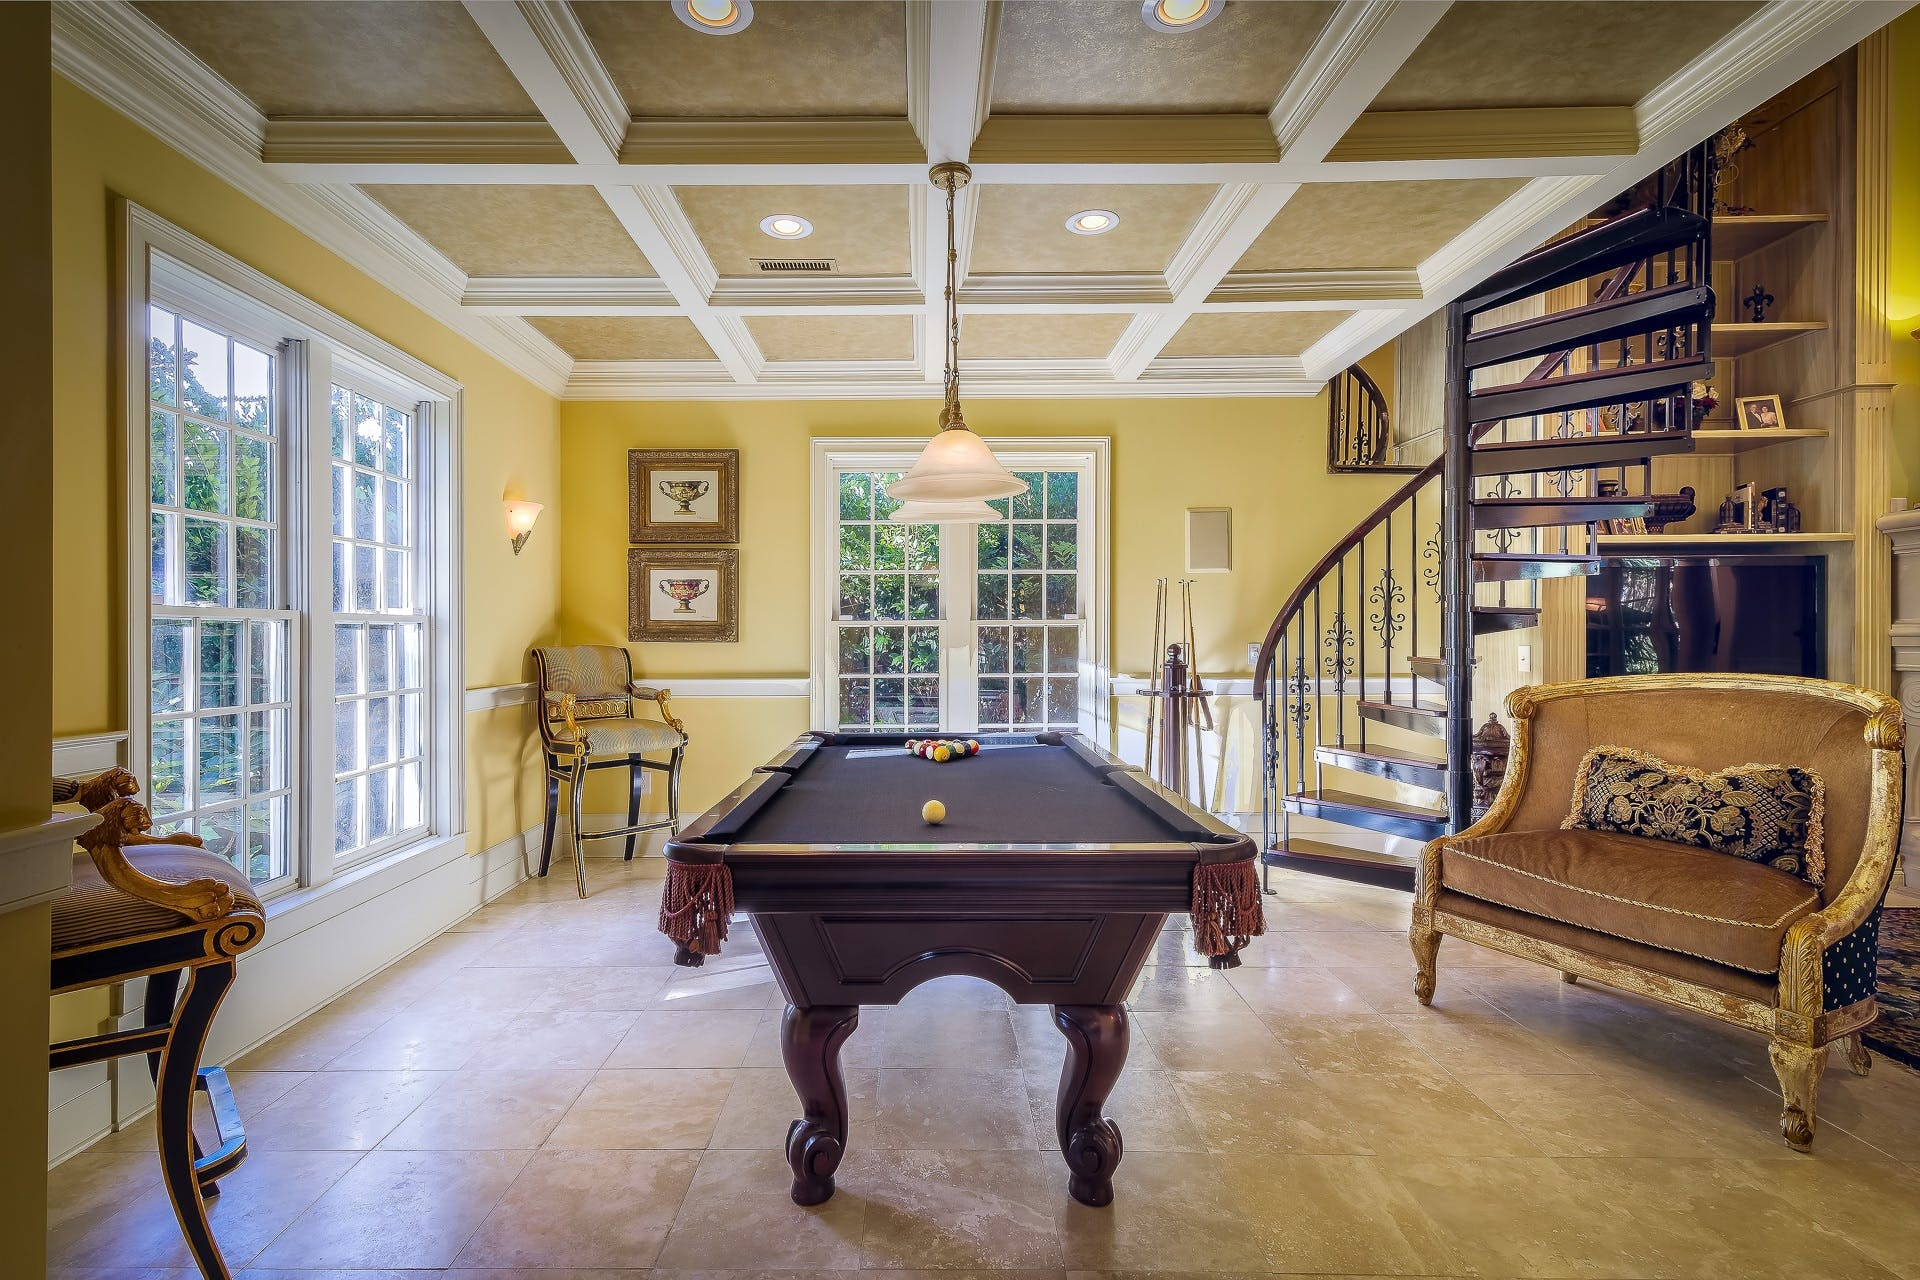 Brown Wooden Billiards Table in Center of Concrete Room